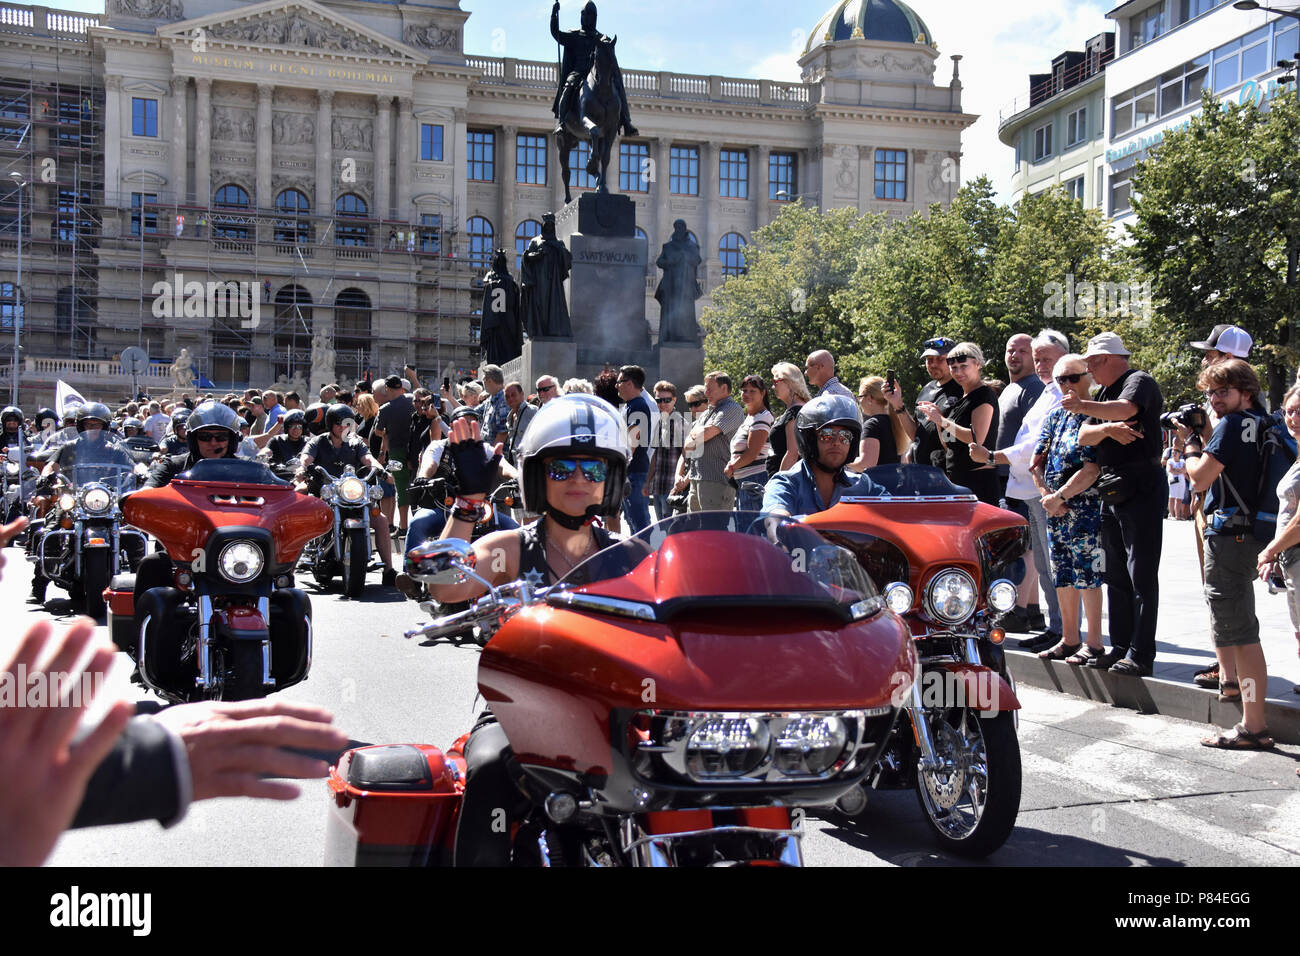 celebrations of 115 years of legendary U.S. brand Harley-Davidson in Prague - Stock Image